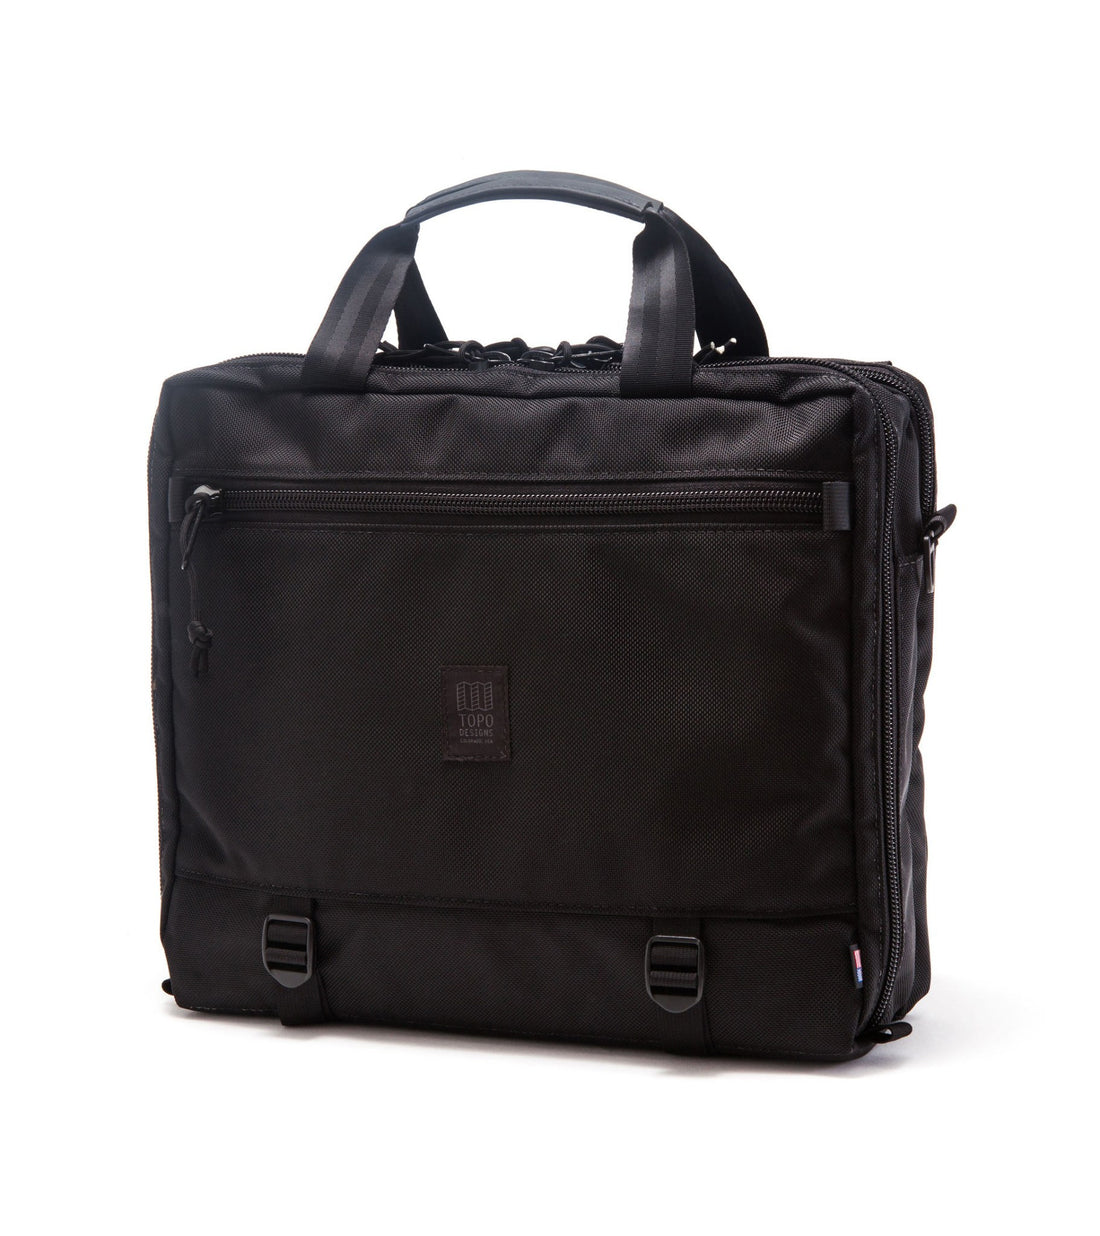 Topo Designs 3-Day Briefcase - Accessories: Bags - Iron and Resin